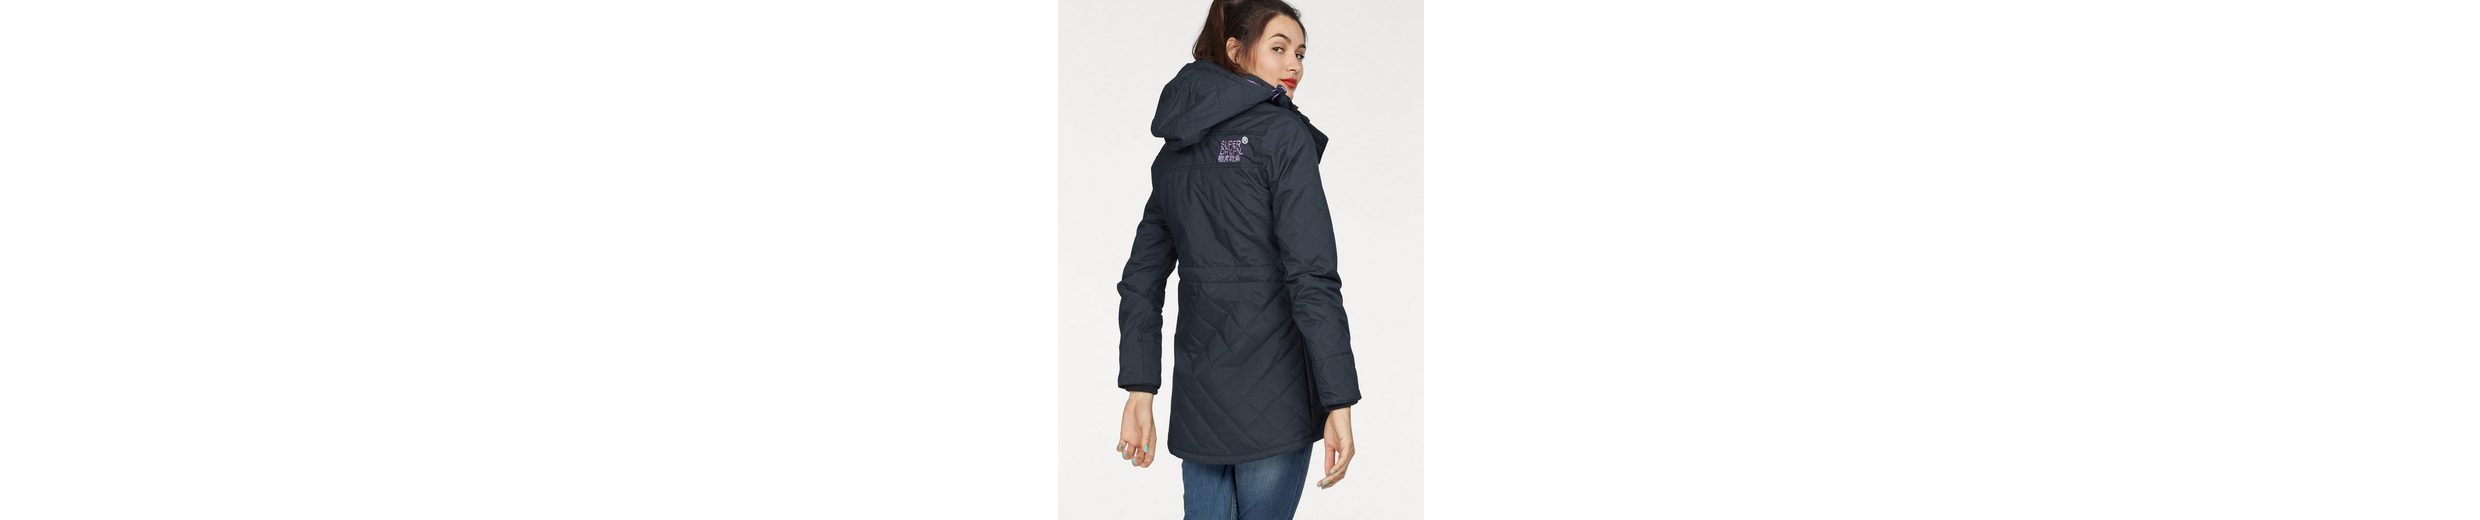 Superdry Outdoorjacke TECNICAL QUILTED WIND PARKA, in gesteppter Optik